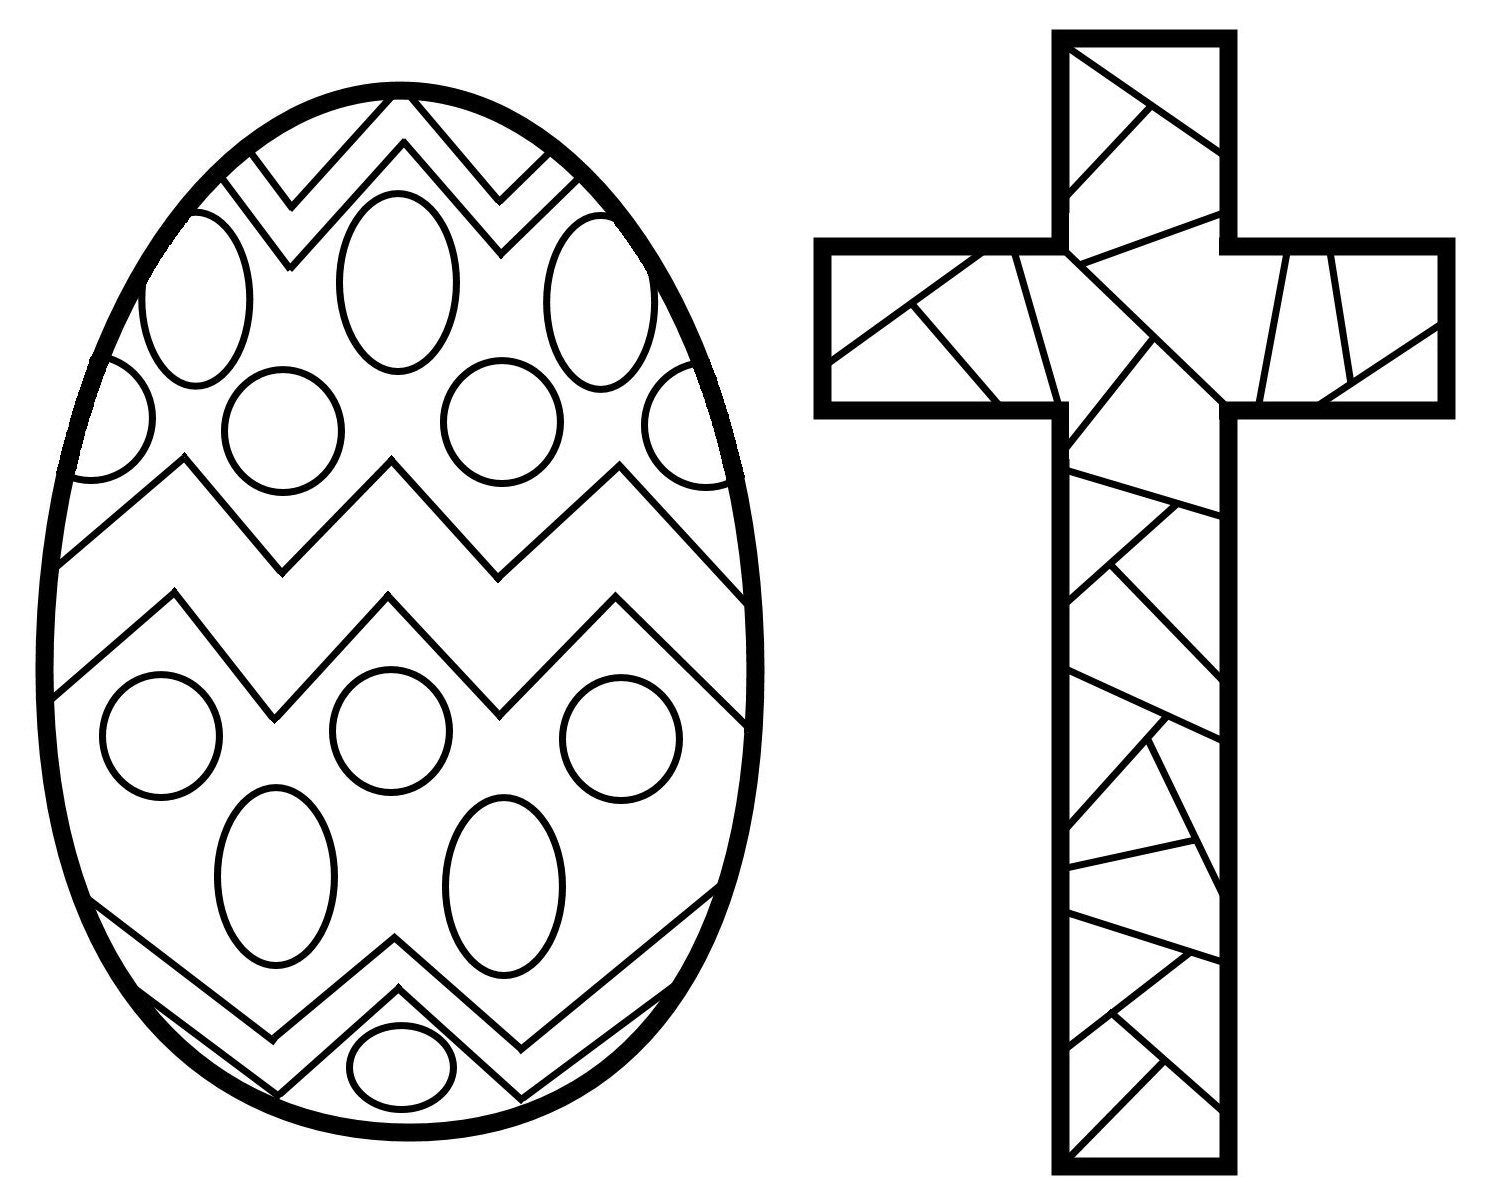 Easter Cross Coloring Pages Printable for Fancy Draw Print to Print Of Easter Coloring14 Gallery